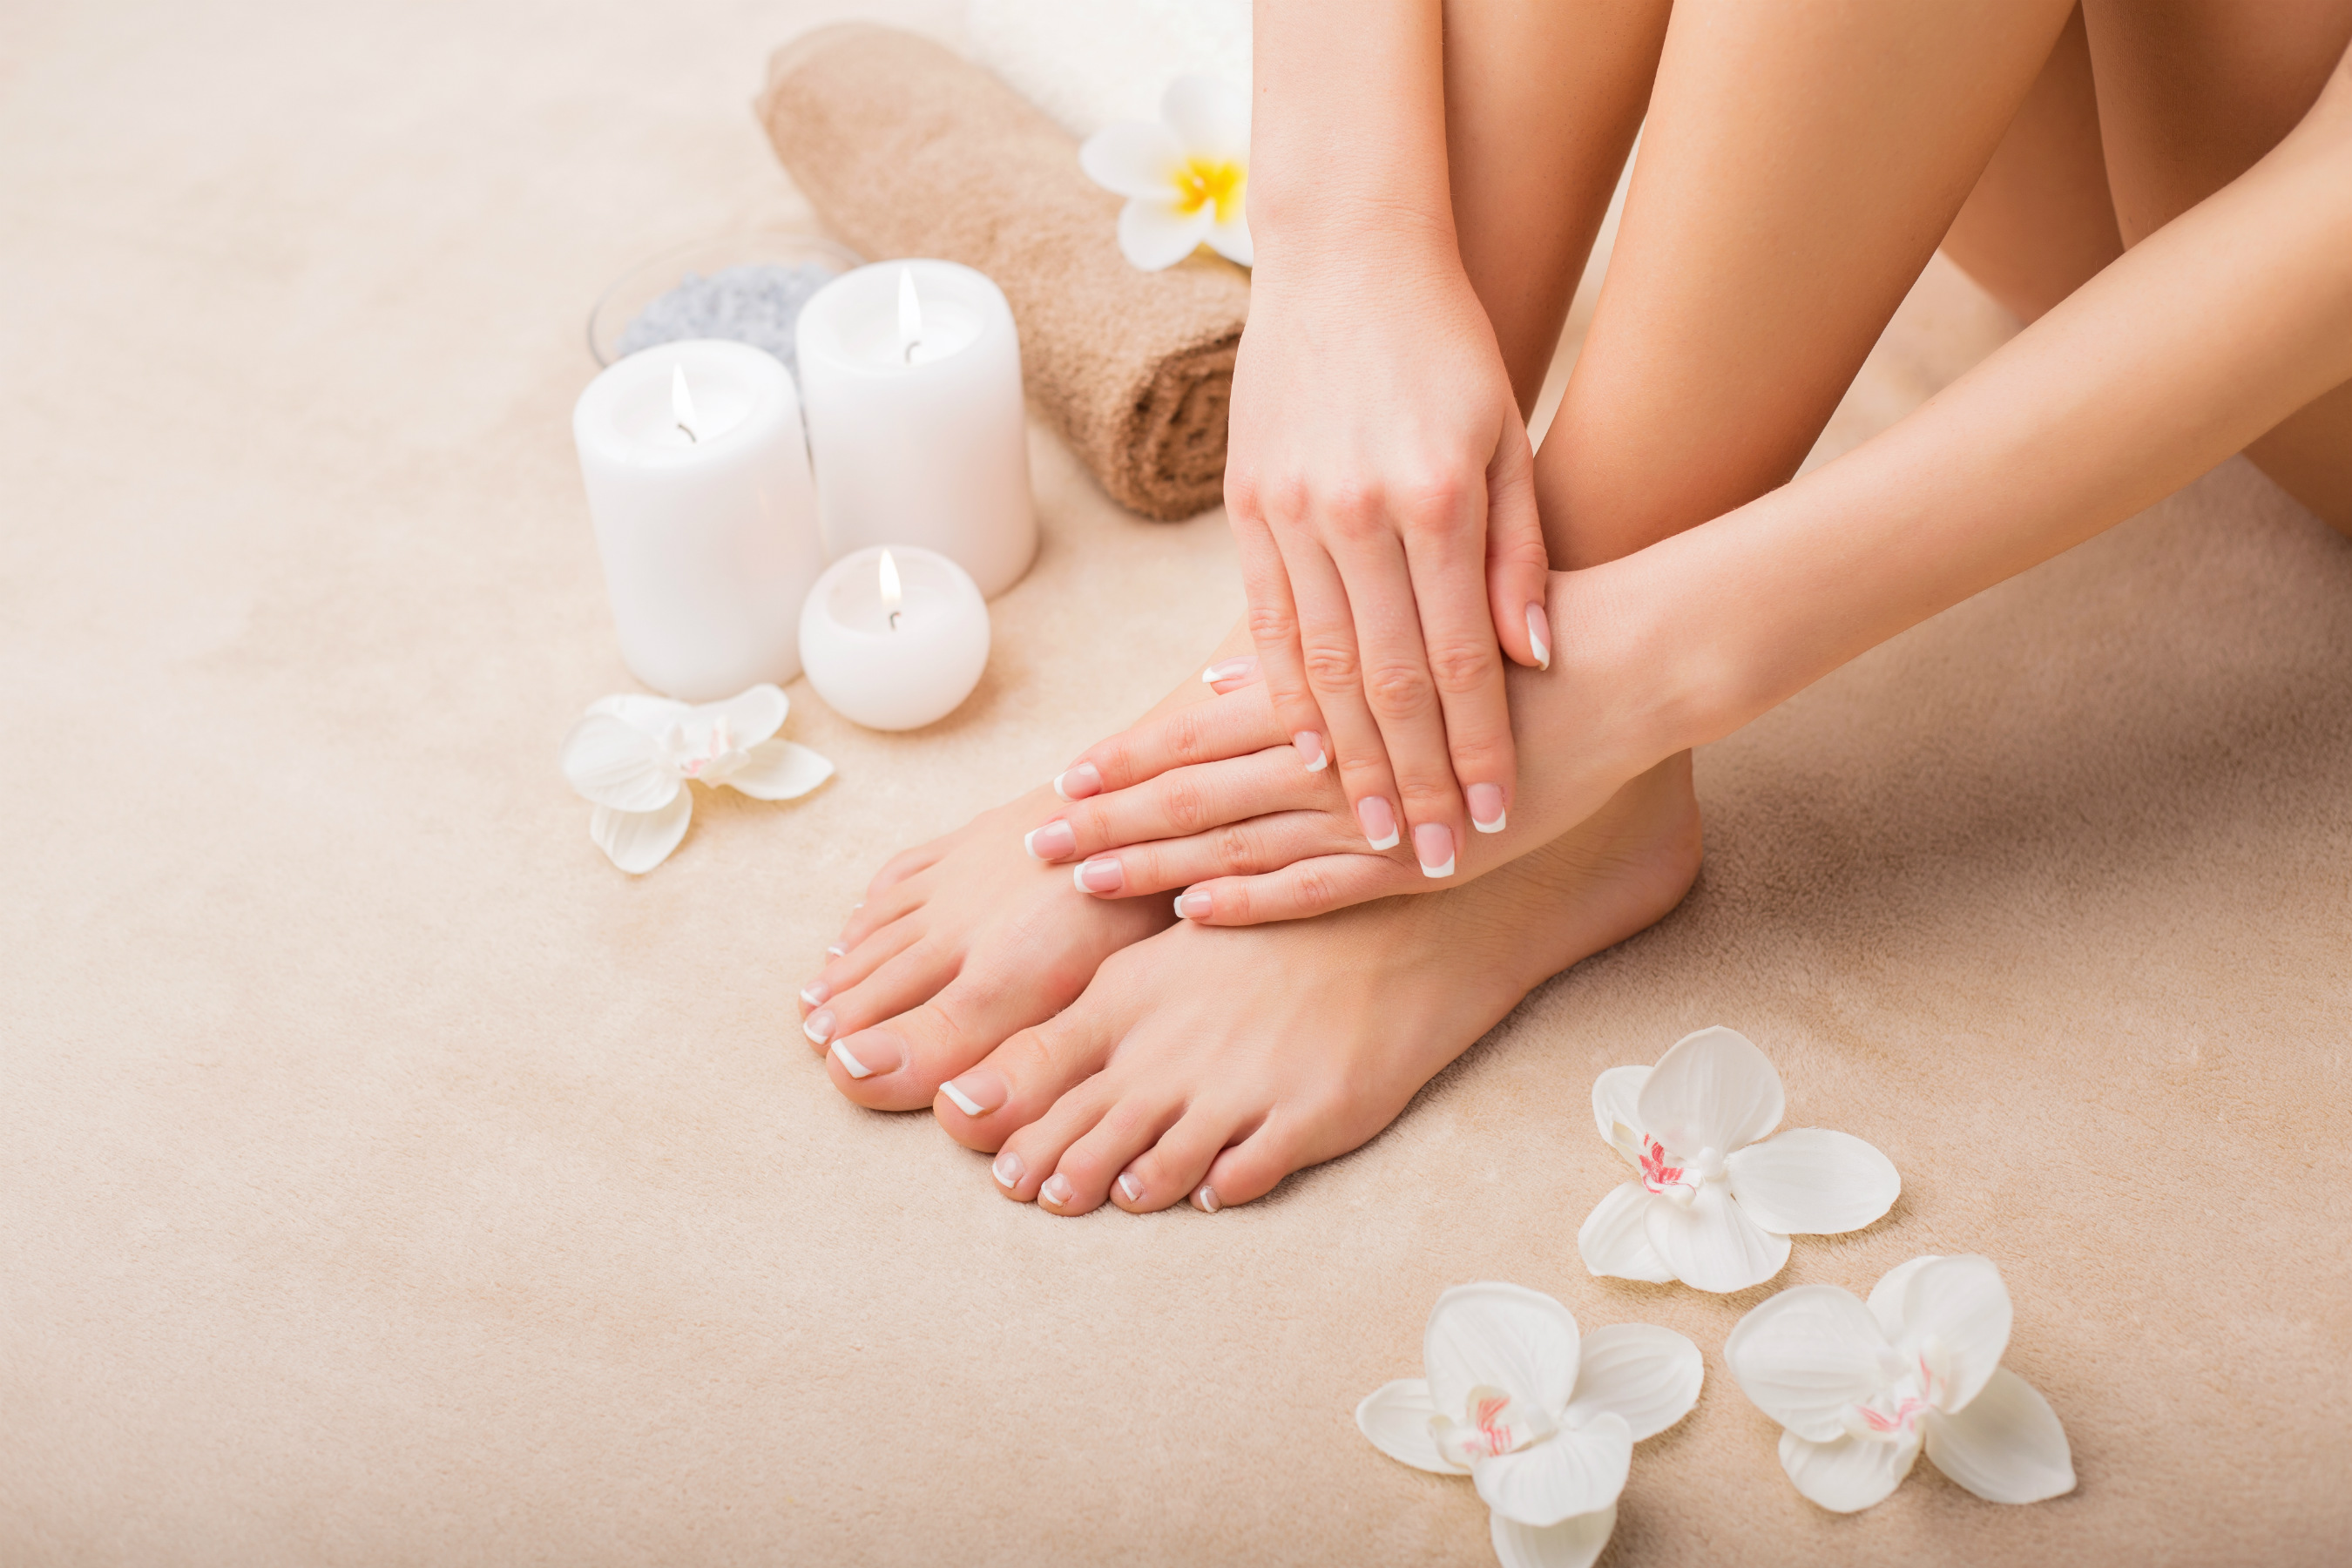 Manicure pedicure spa